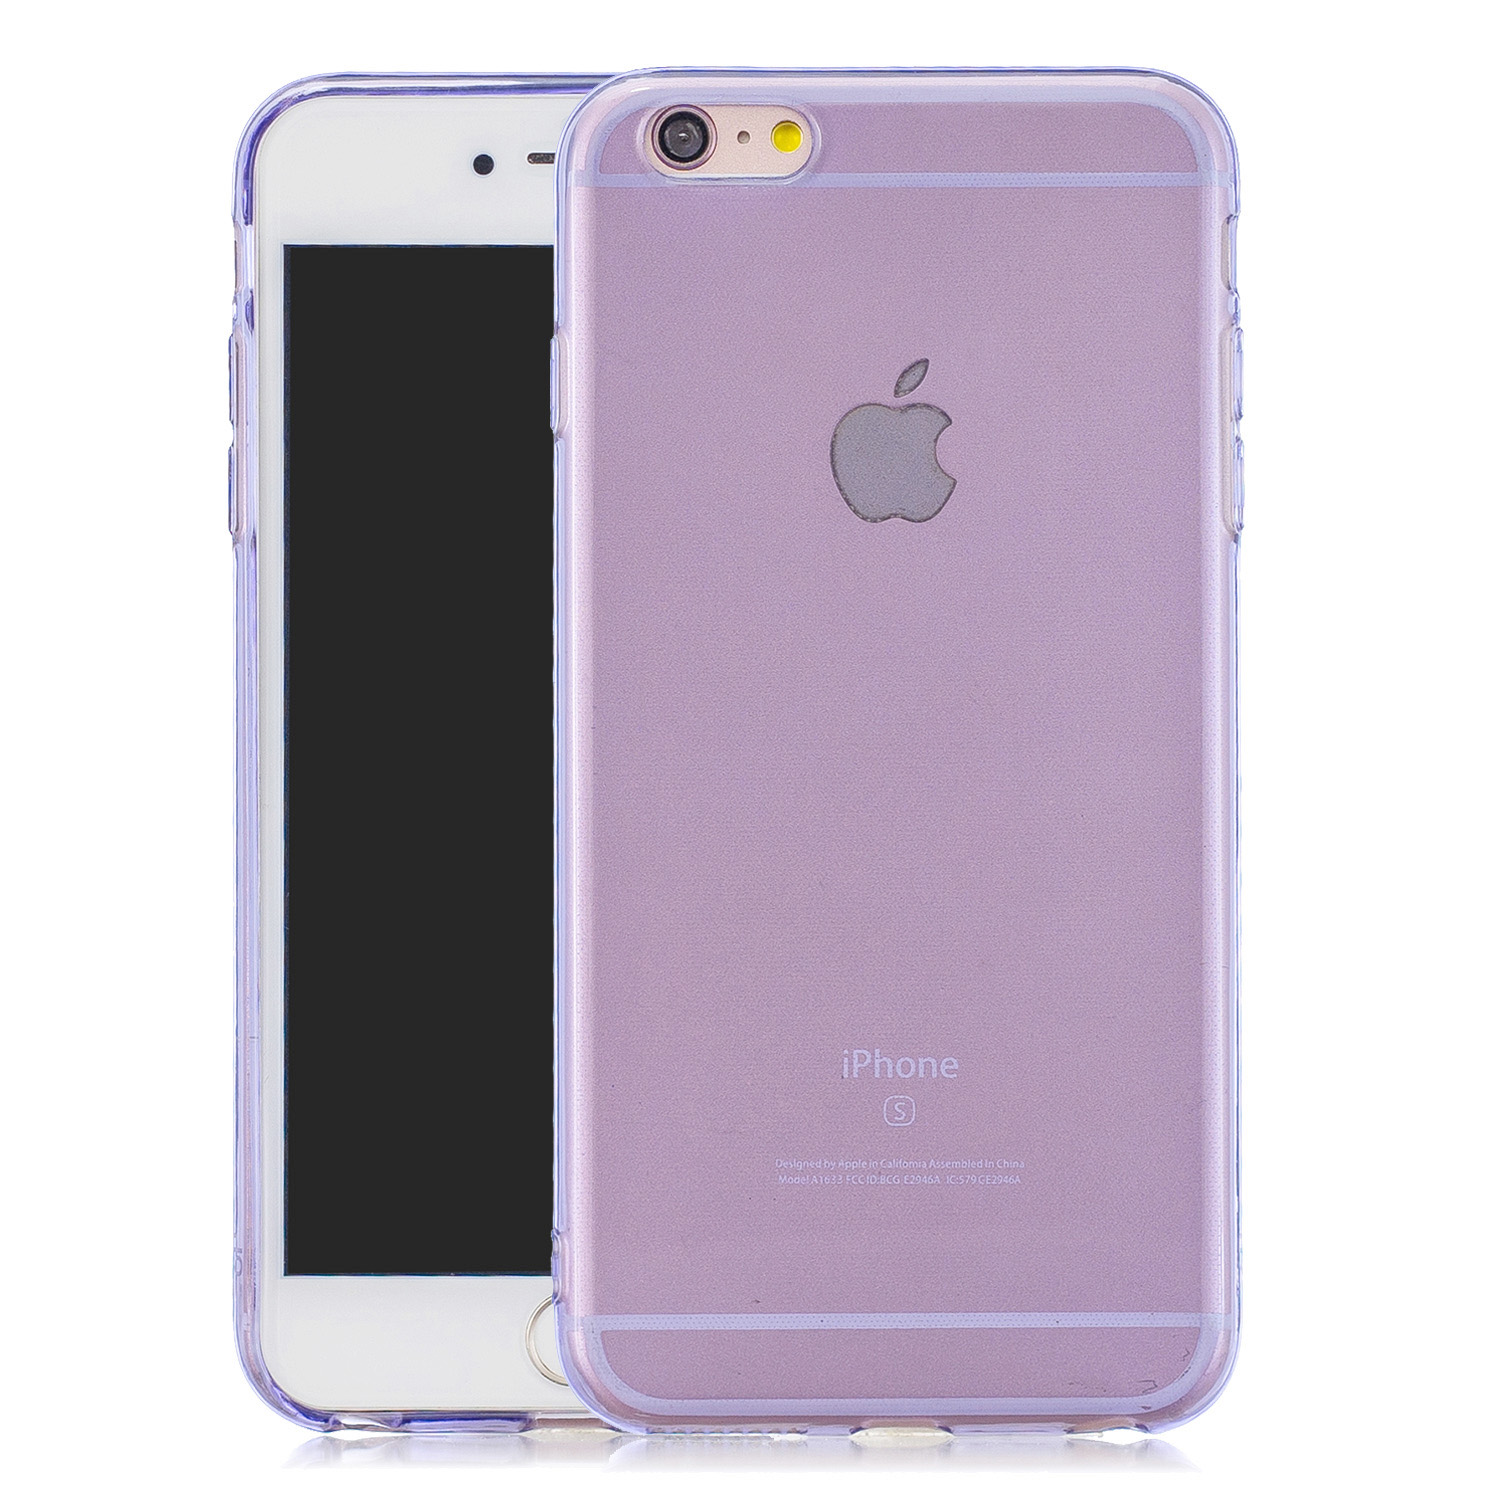 for iPhone 6/6S / 6 Plus/6S Plus / 7/8 / 7 Plus/8 Plus Clear Colorful TPU Back Cover Cellphone Case Shell Purple